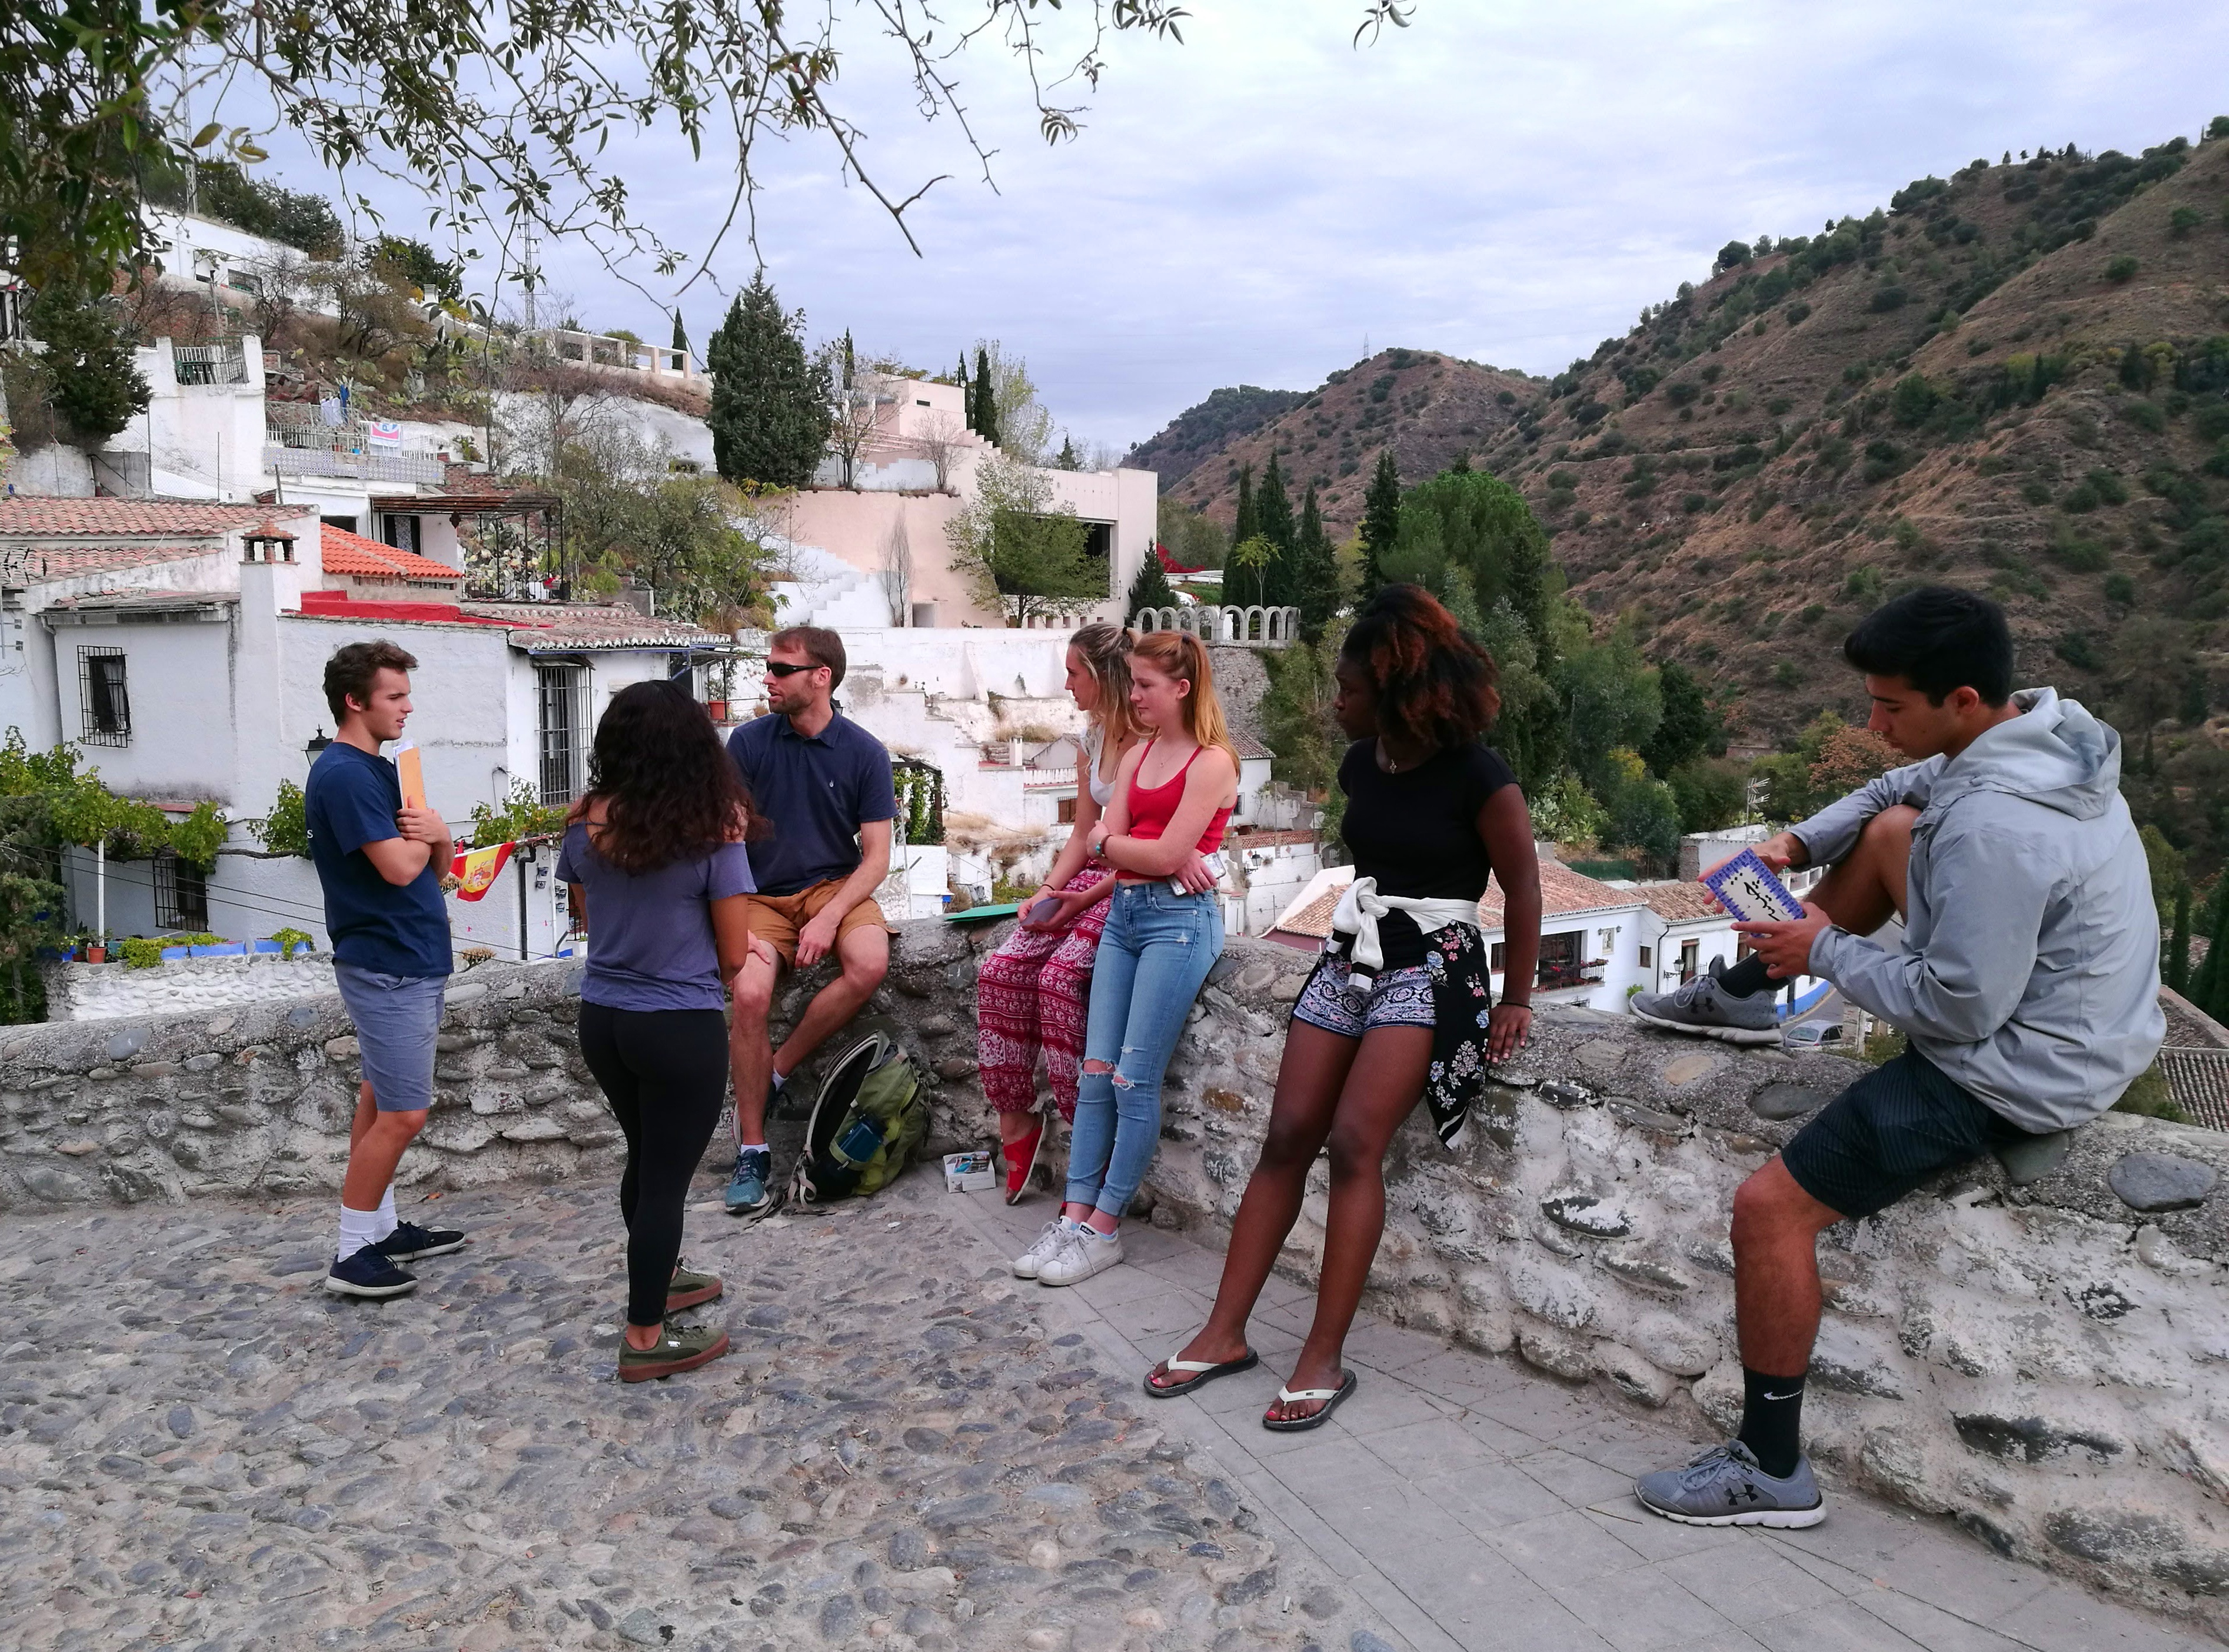 Proctor en Segovia explores the Sacromonte neighborhood of Granada